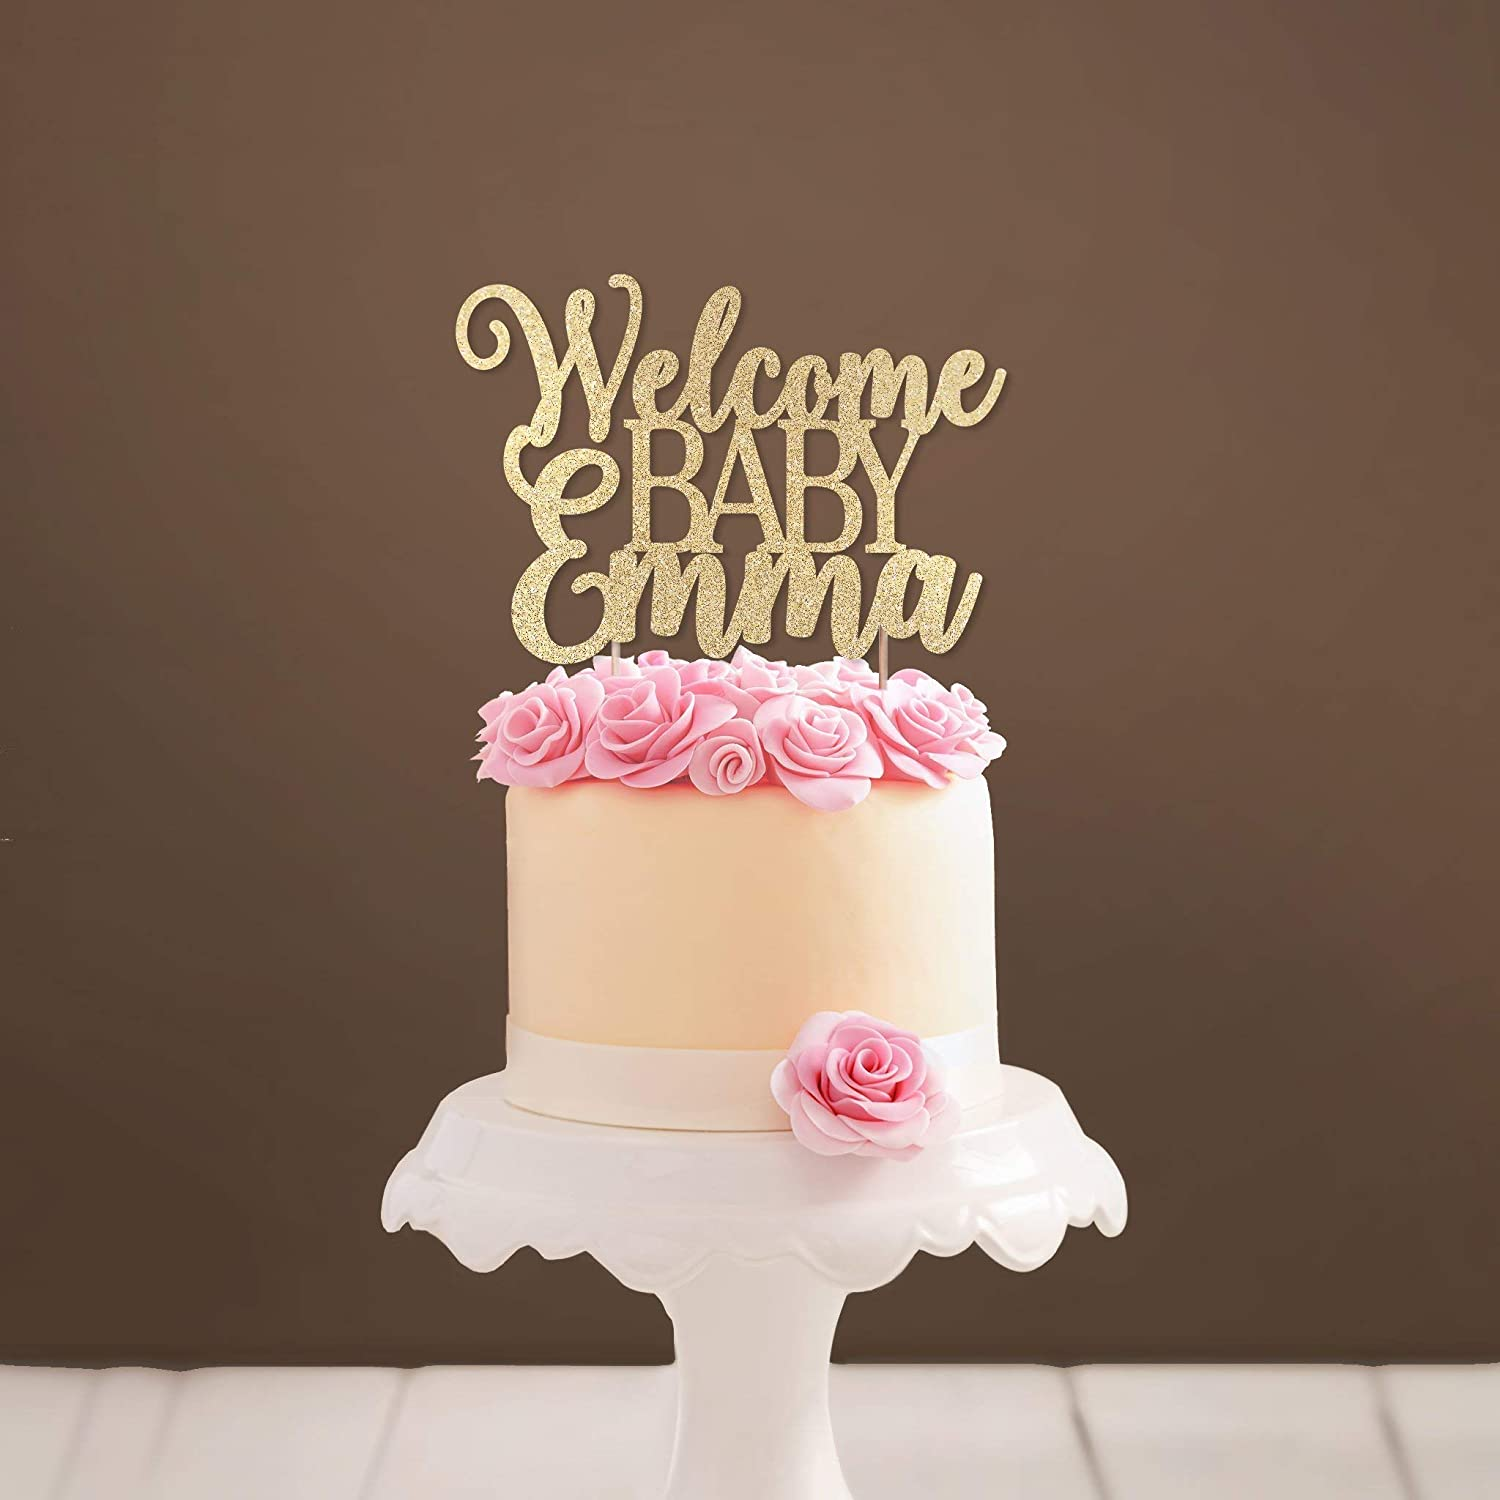 Custom Welcome Baby Cake Topper Glittery Baby Shower Cake Topper Girl Baby Shower Party Decoration Baby Boy Shower Cake Topper Amazon Co Uk Handmade